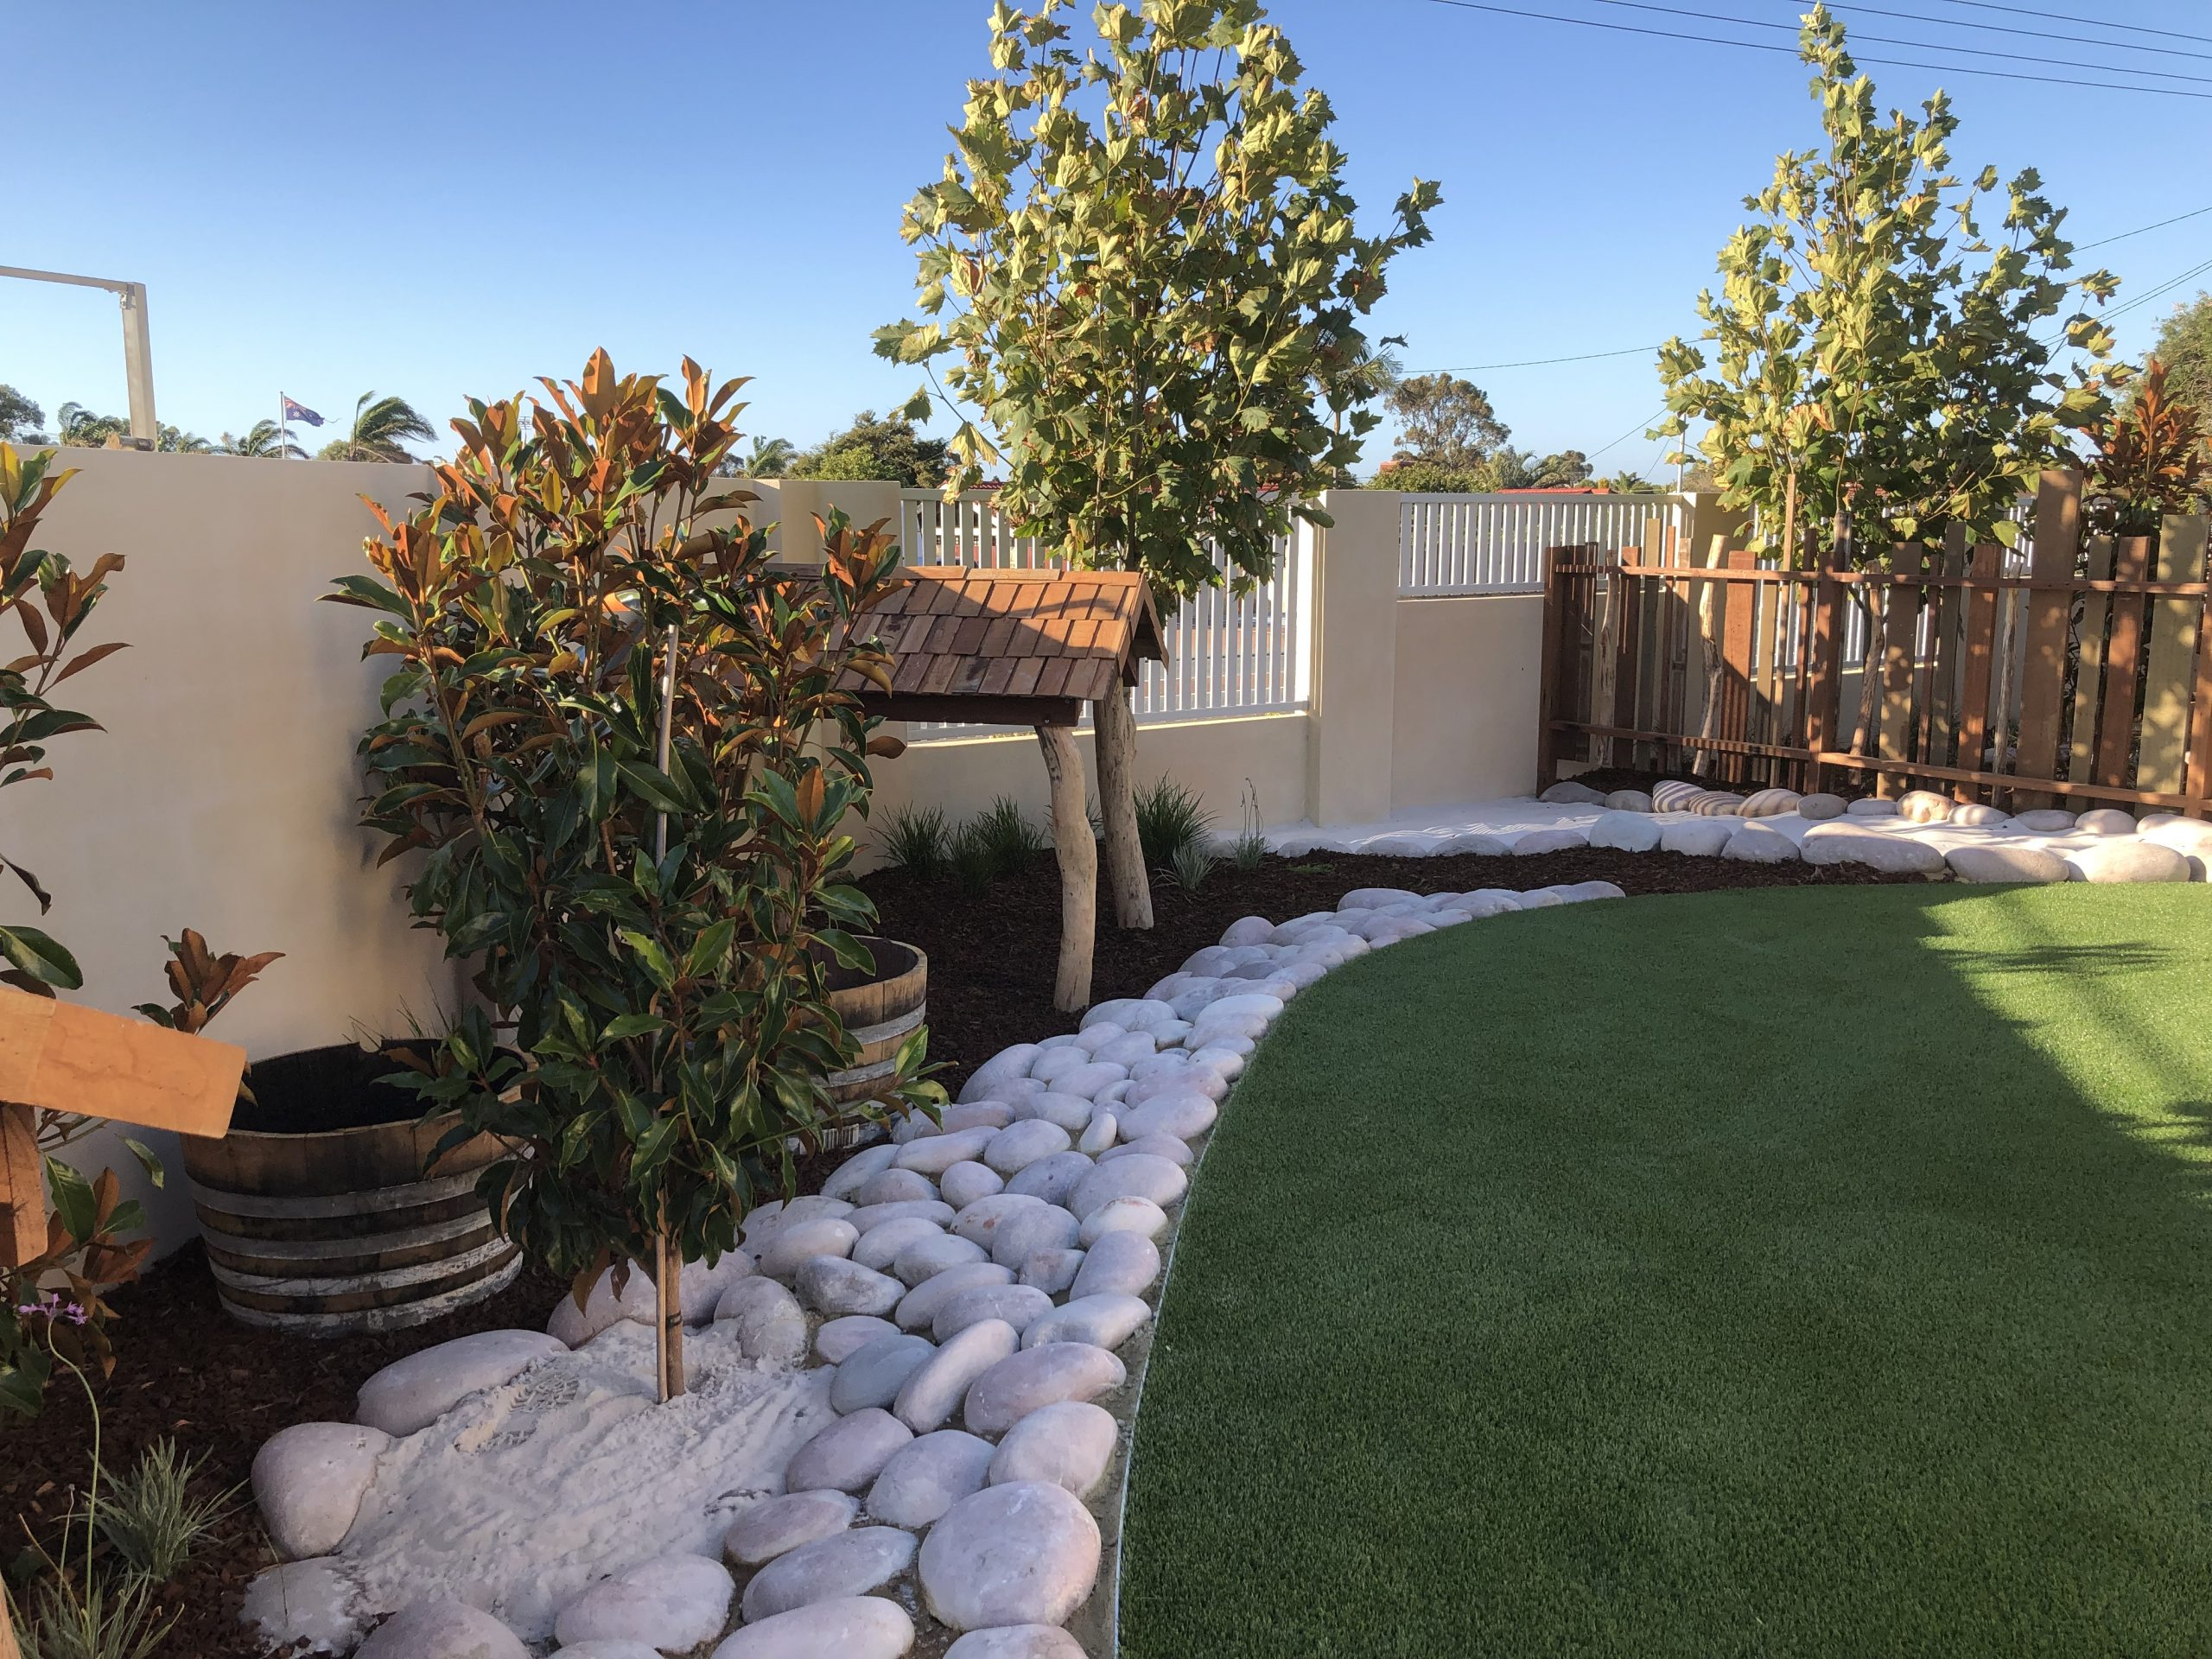 Clean grass carpet with large white stone pebbles.